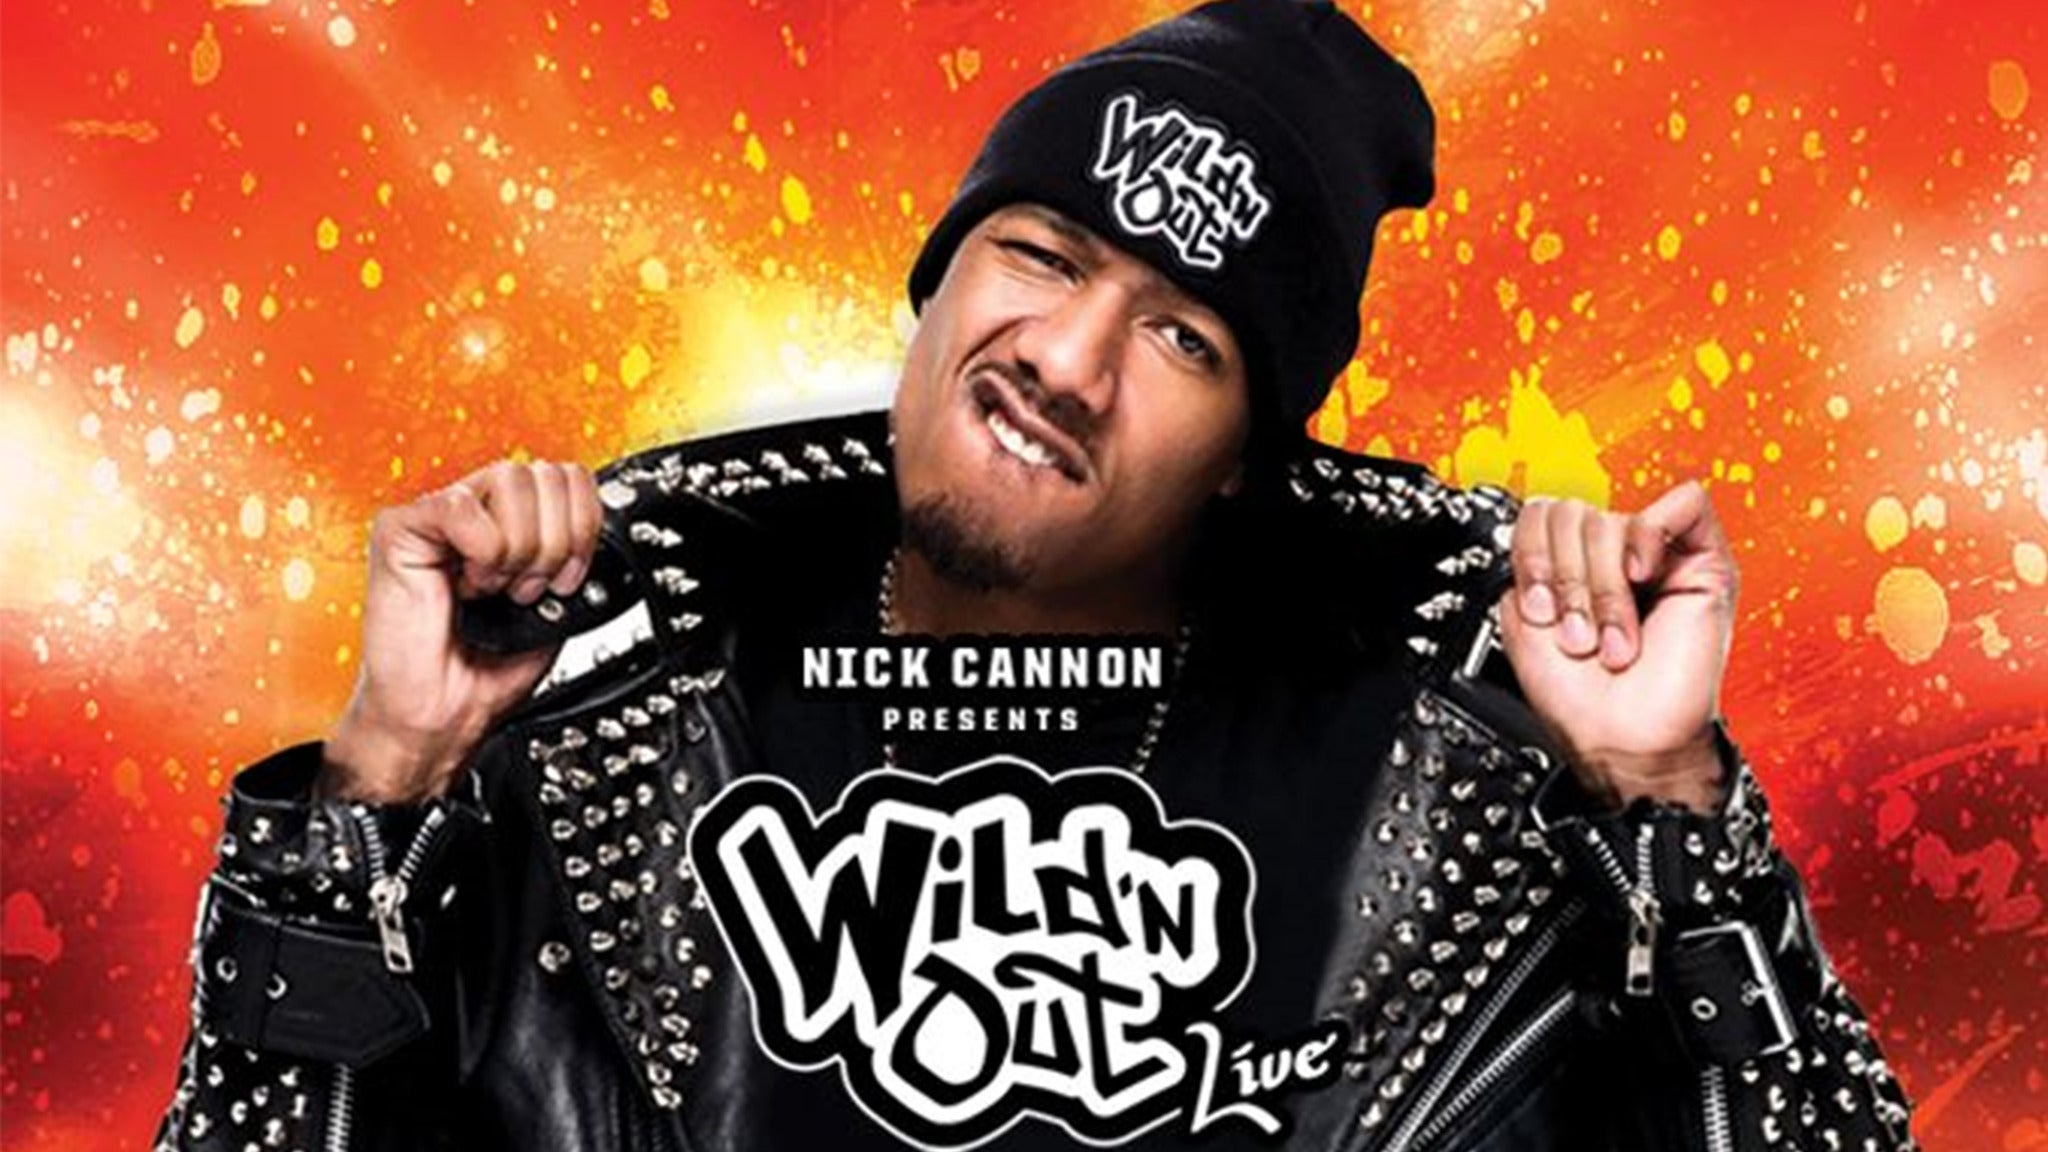 NICK CANNON PRESENTS: WILD 'N OUT LIVE